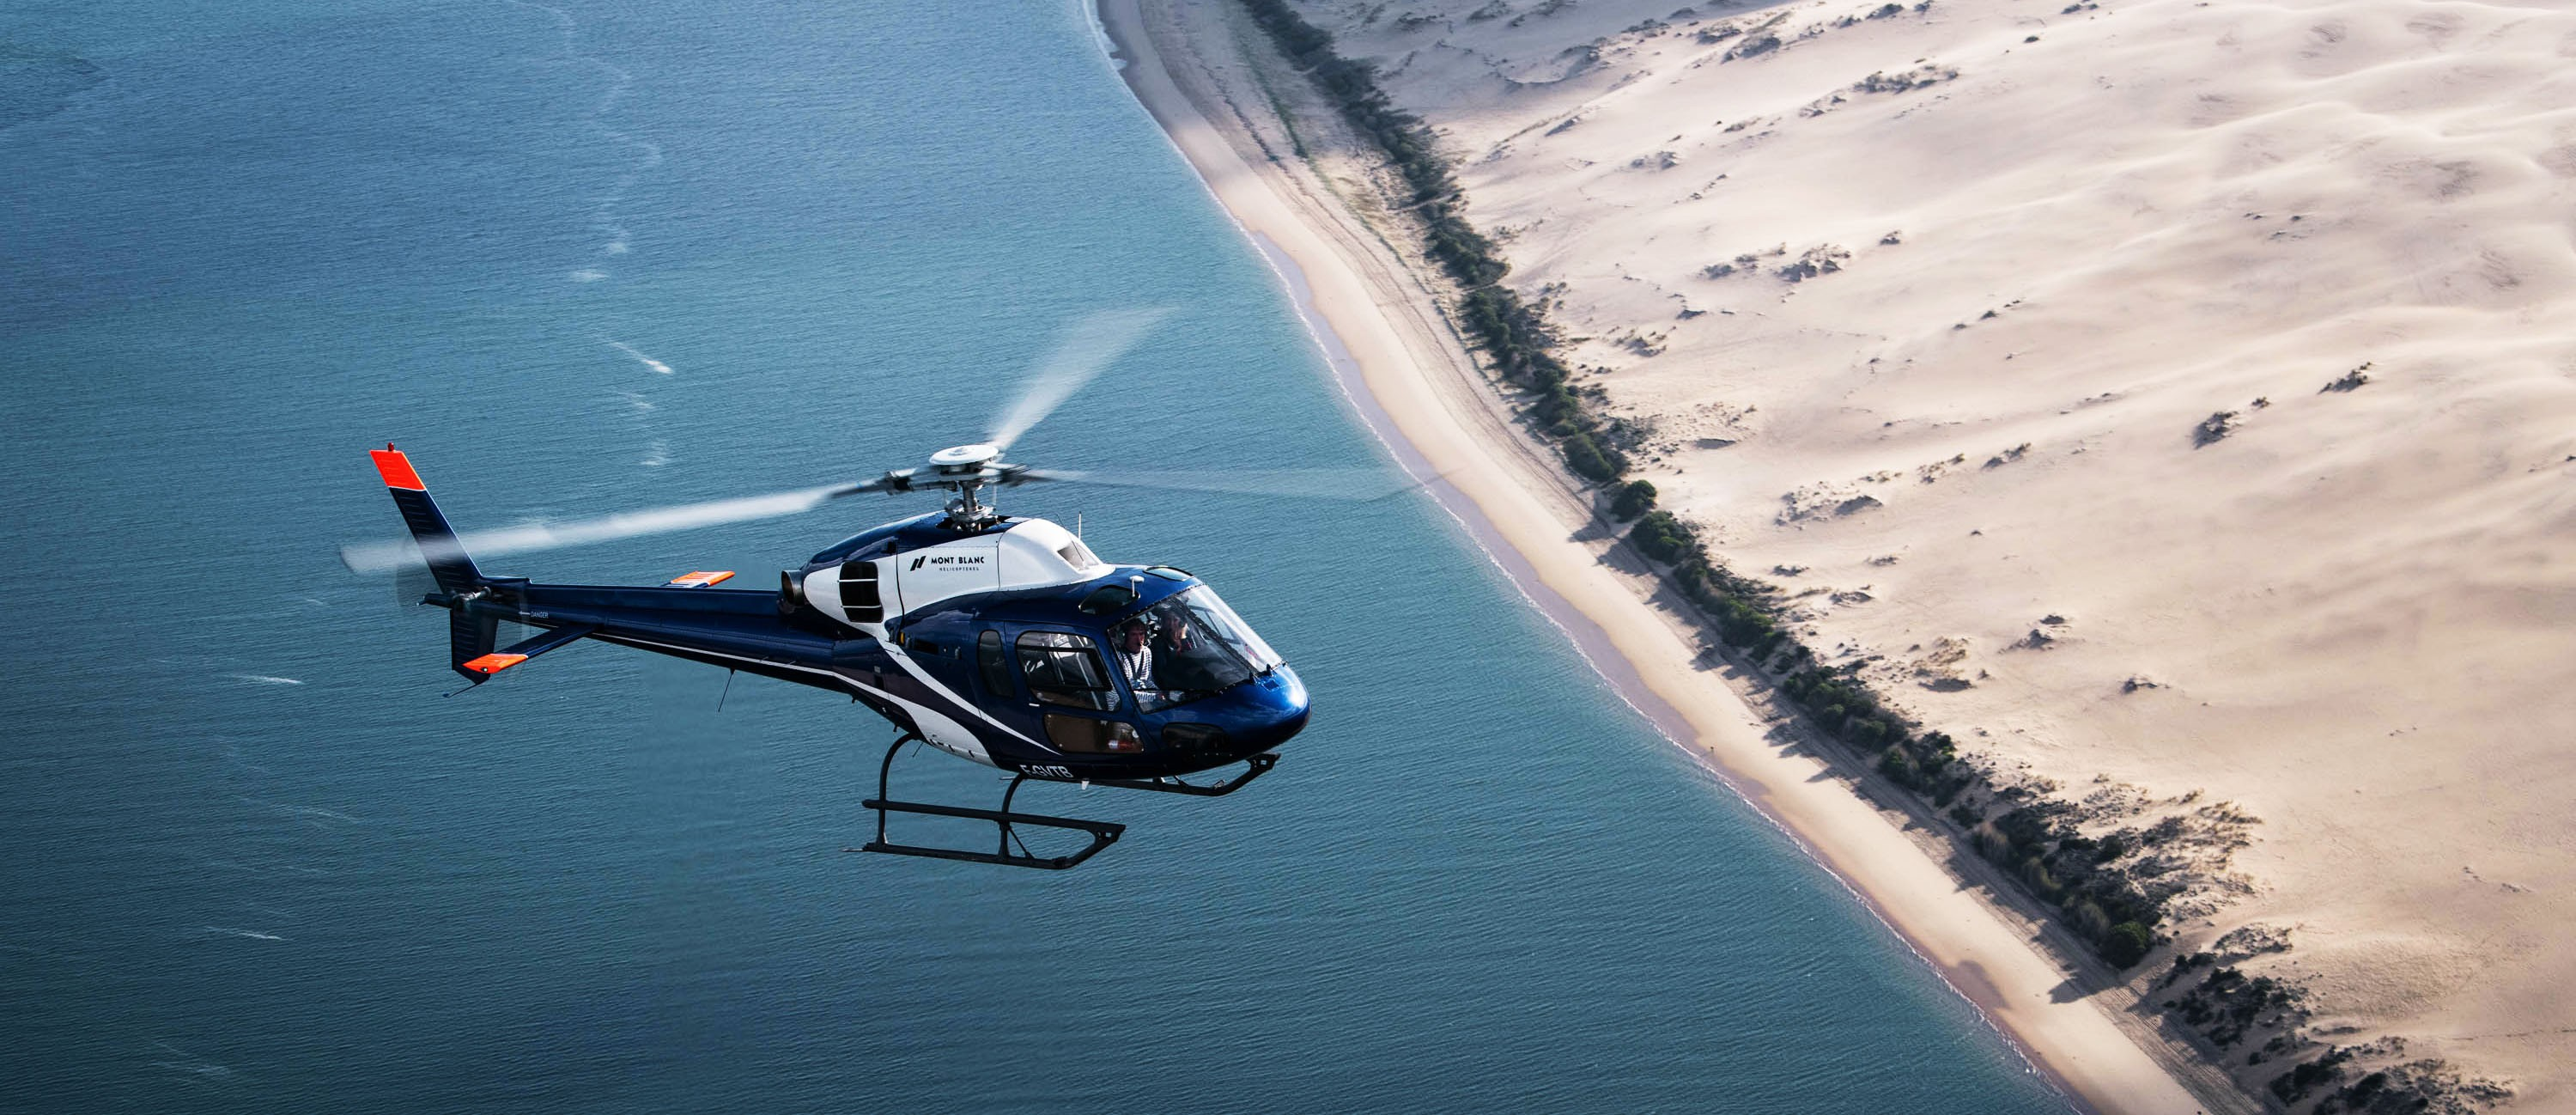 LIVE A UNIQUE EXPERIENCE FROM THE AIR!